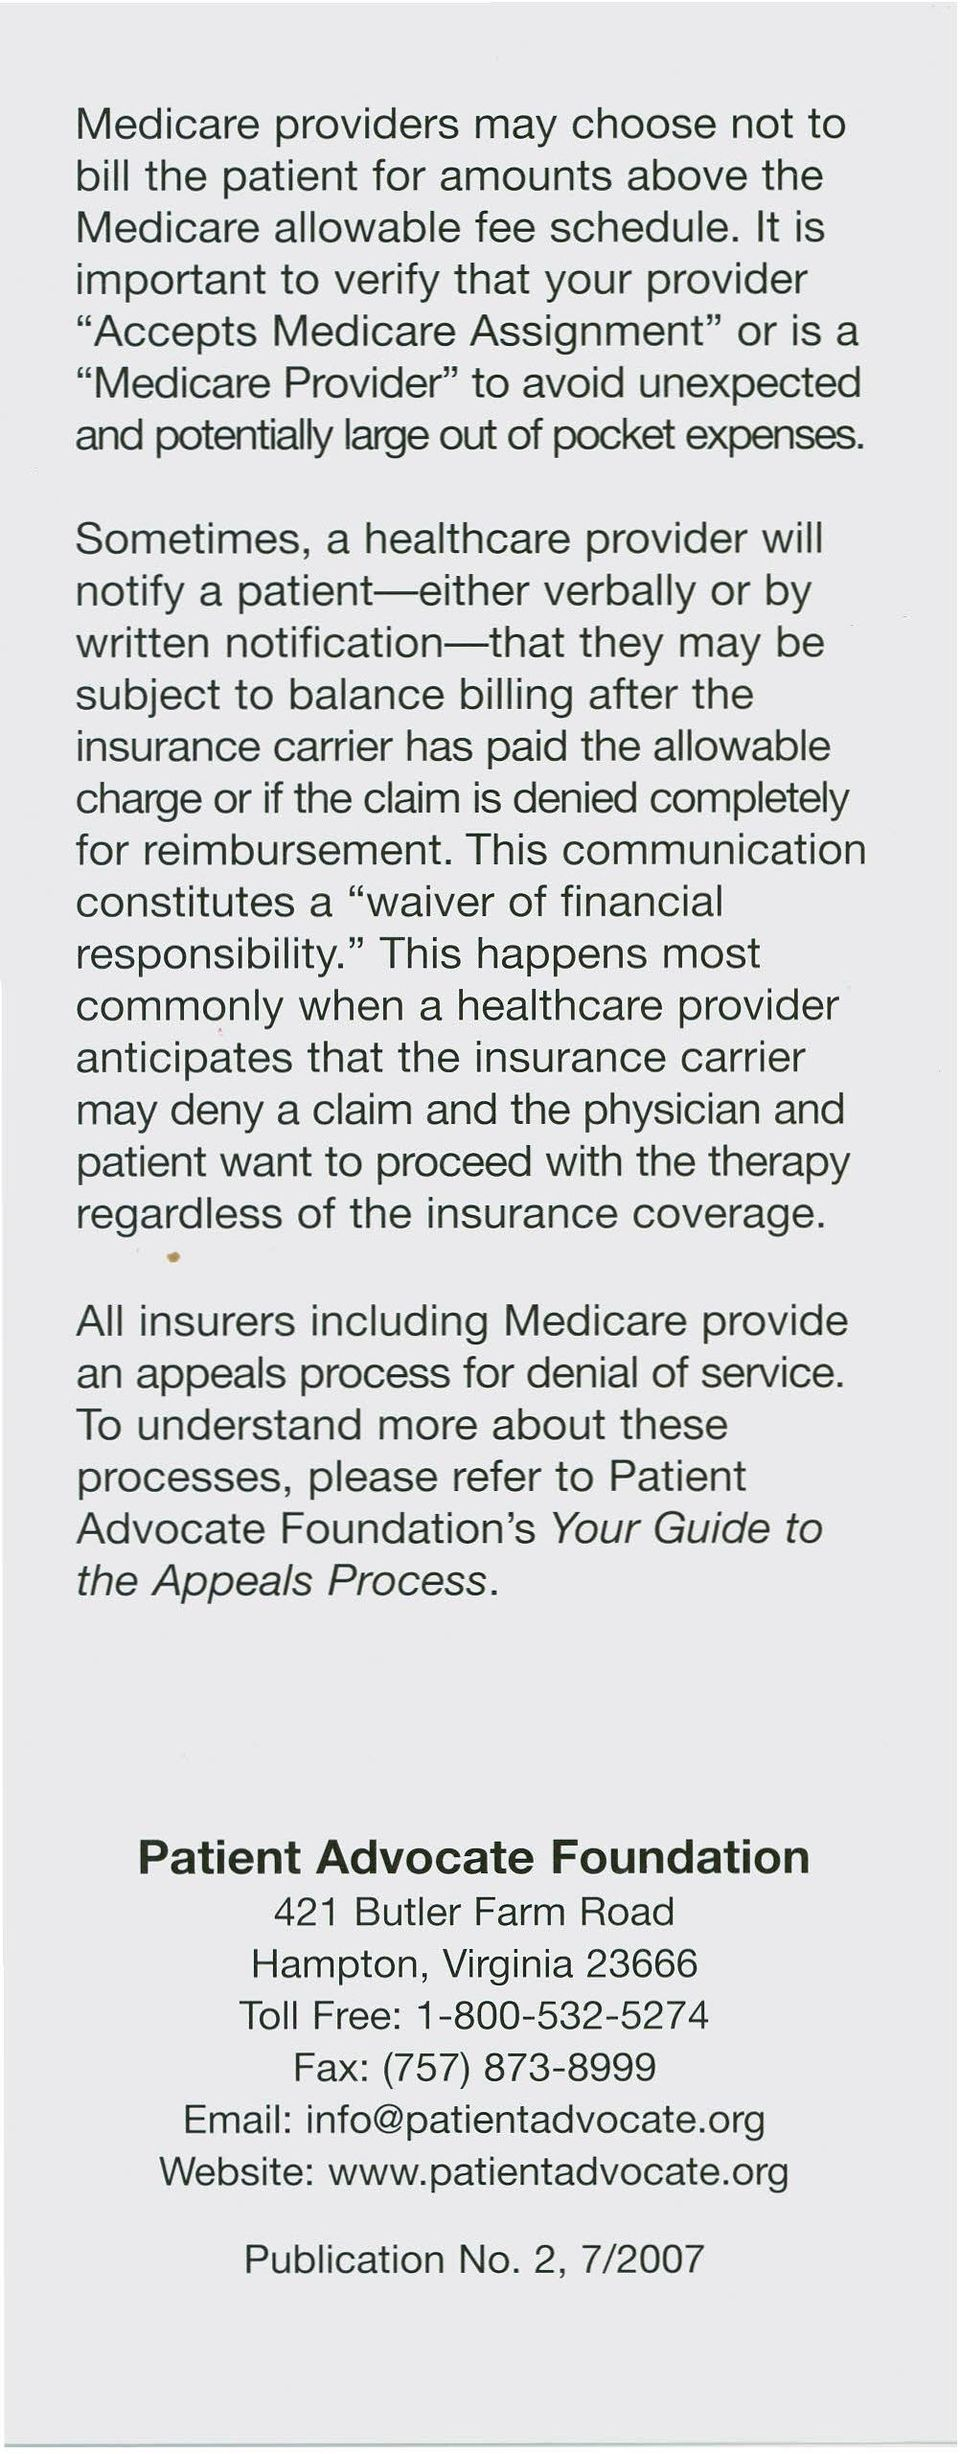 Sometimes, a healthcare provider will notify a patient-either verbally or by written notification-that they may be subject to balance billing after the insurance carrier has paid the allowable charge